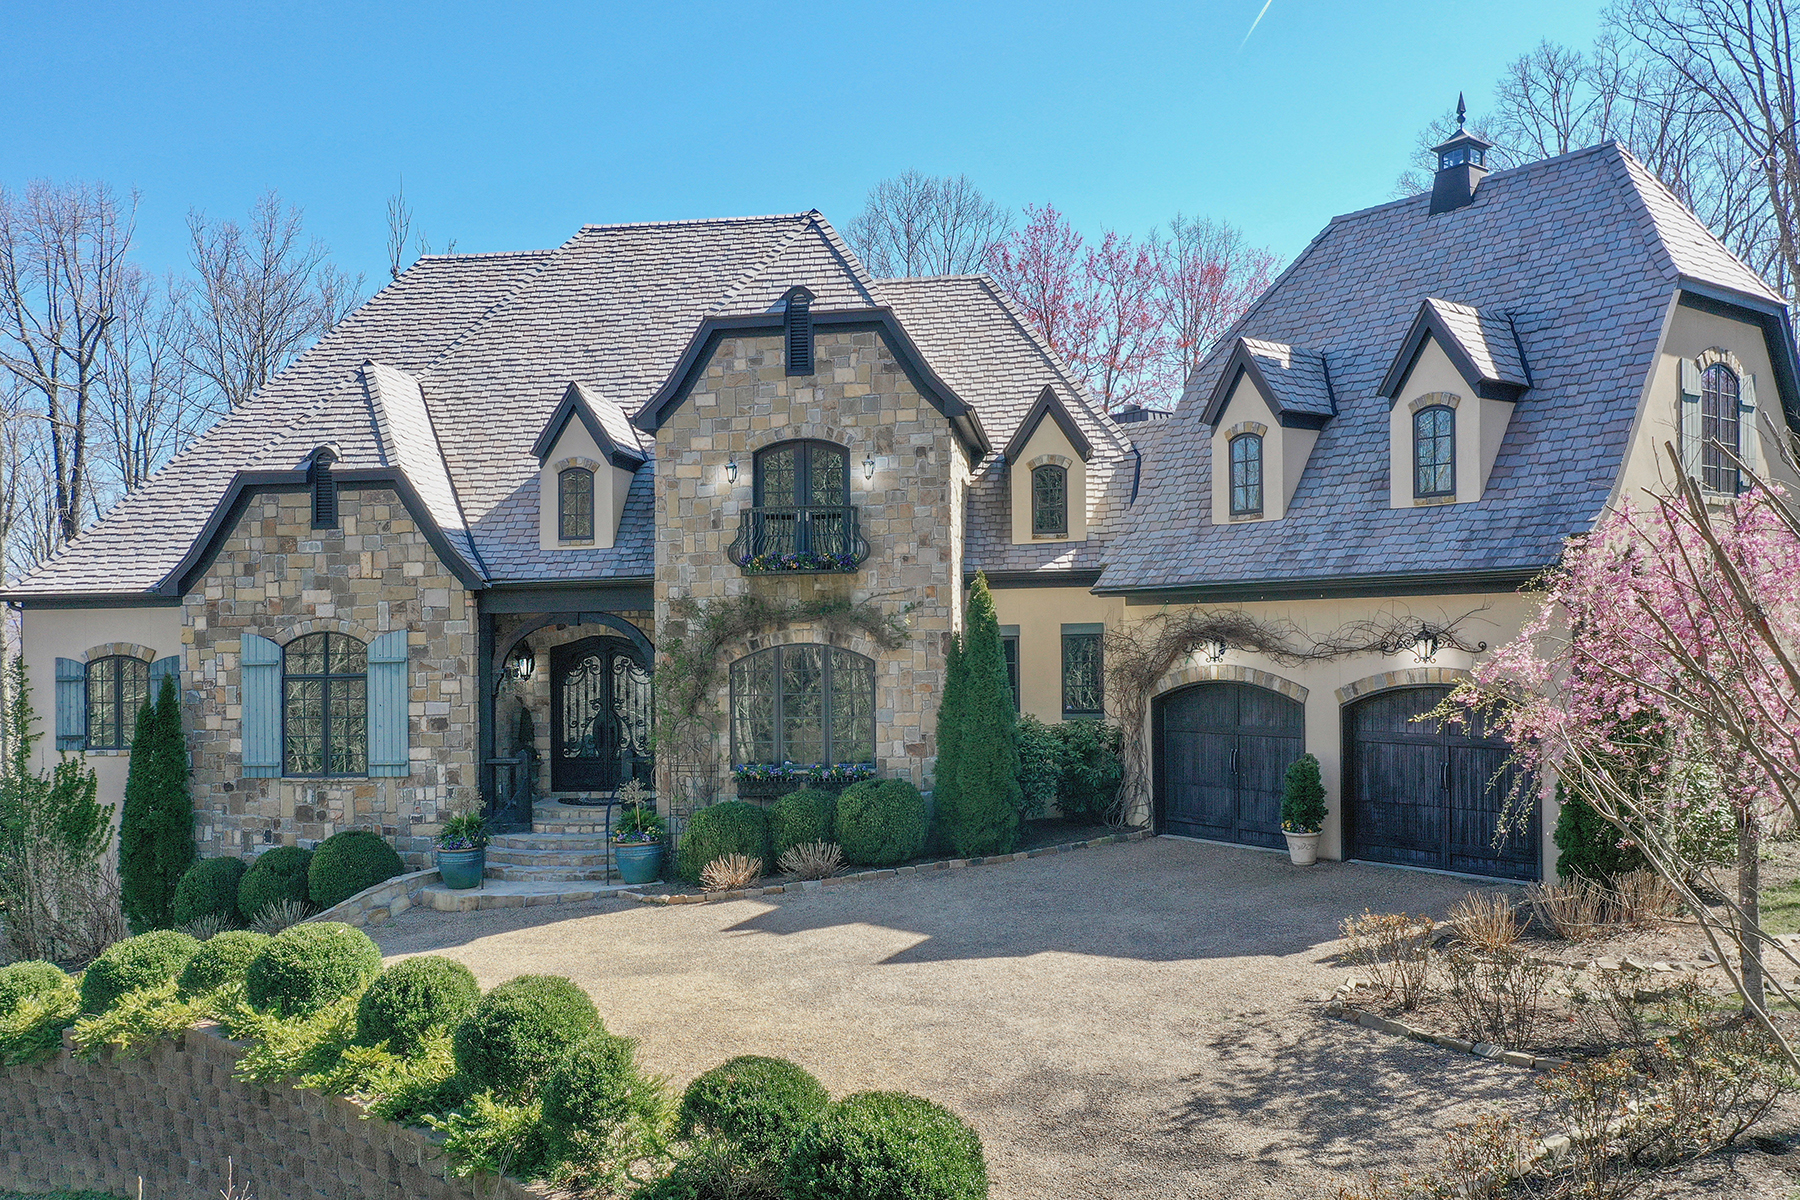 Single Family Home for Active at MONARCH ESTATES 134 Sovereign Lane Fairview, North Carolina 28730 United States